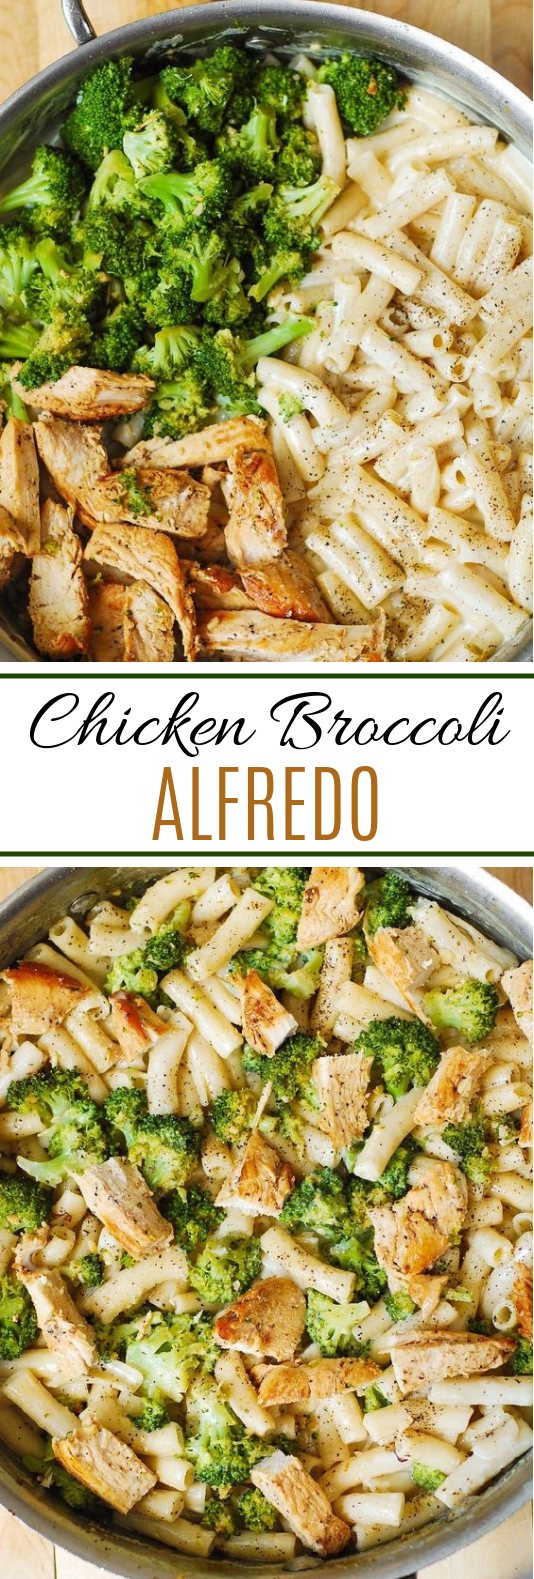 Chicken Broccoli Alfredo #dinner #quickrecipe